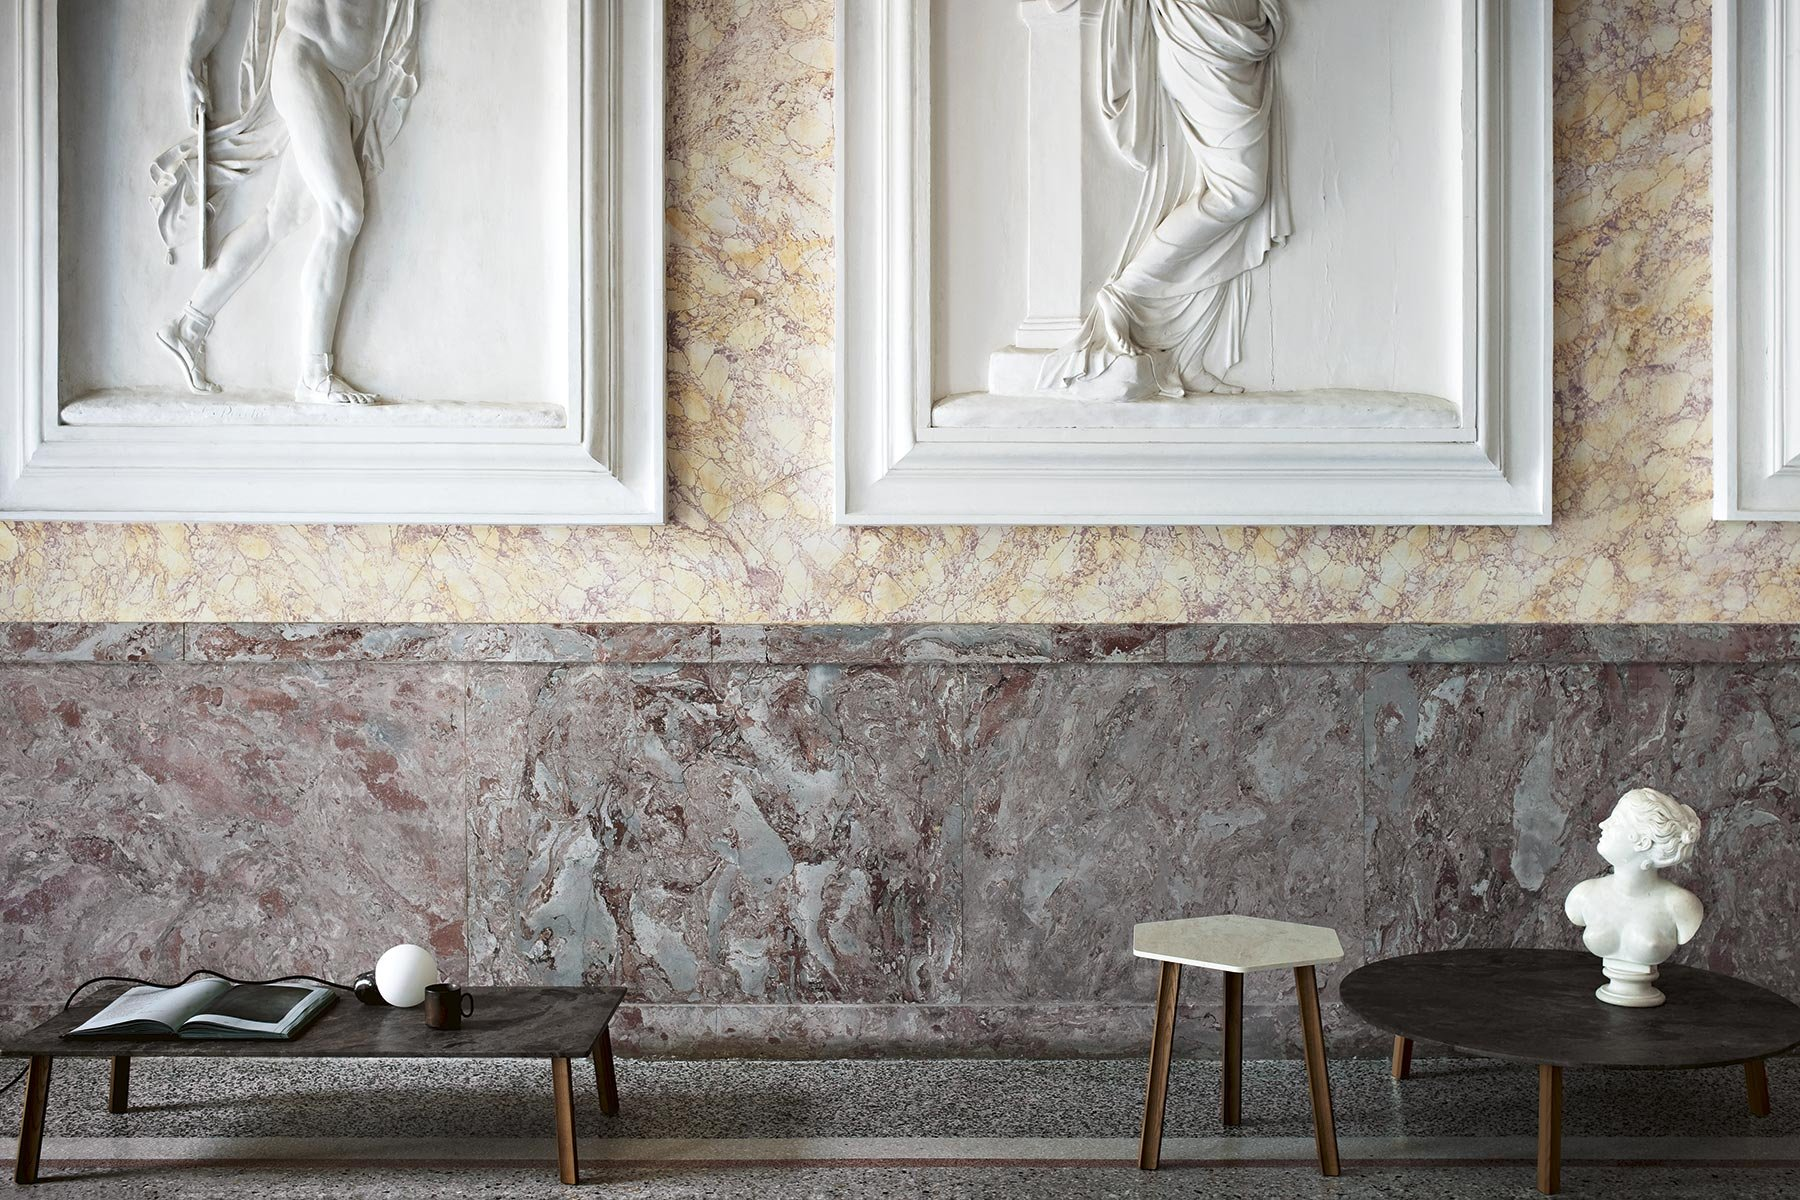 Ruler Marble Coffee Table from Tacchini